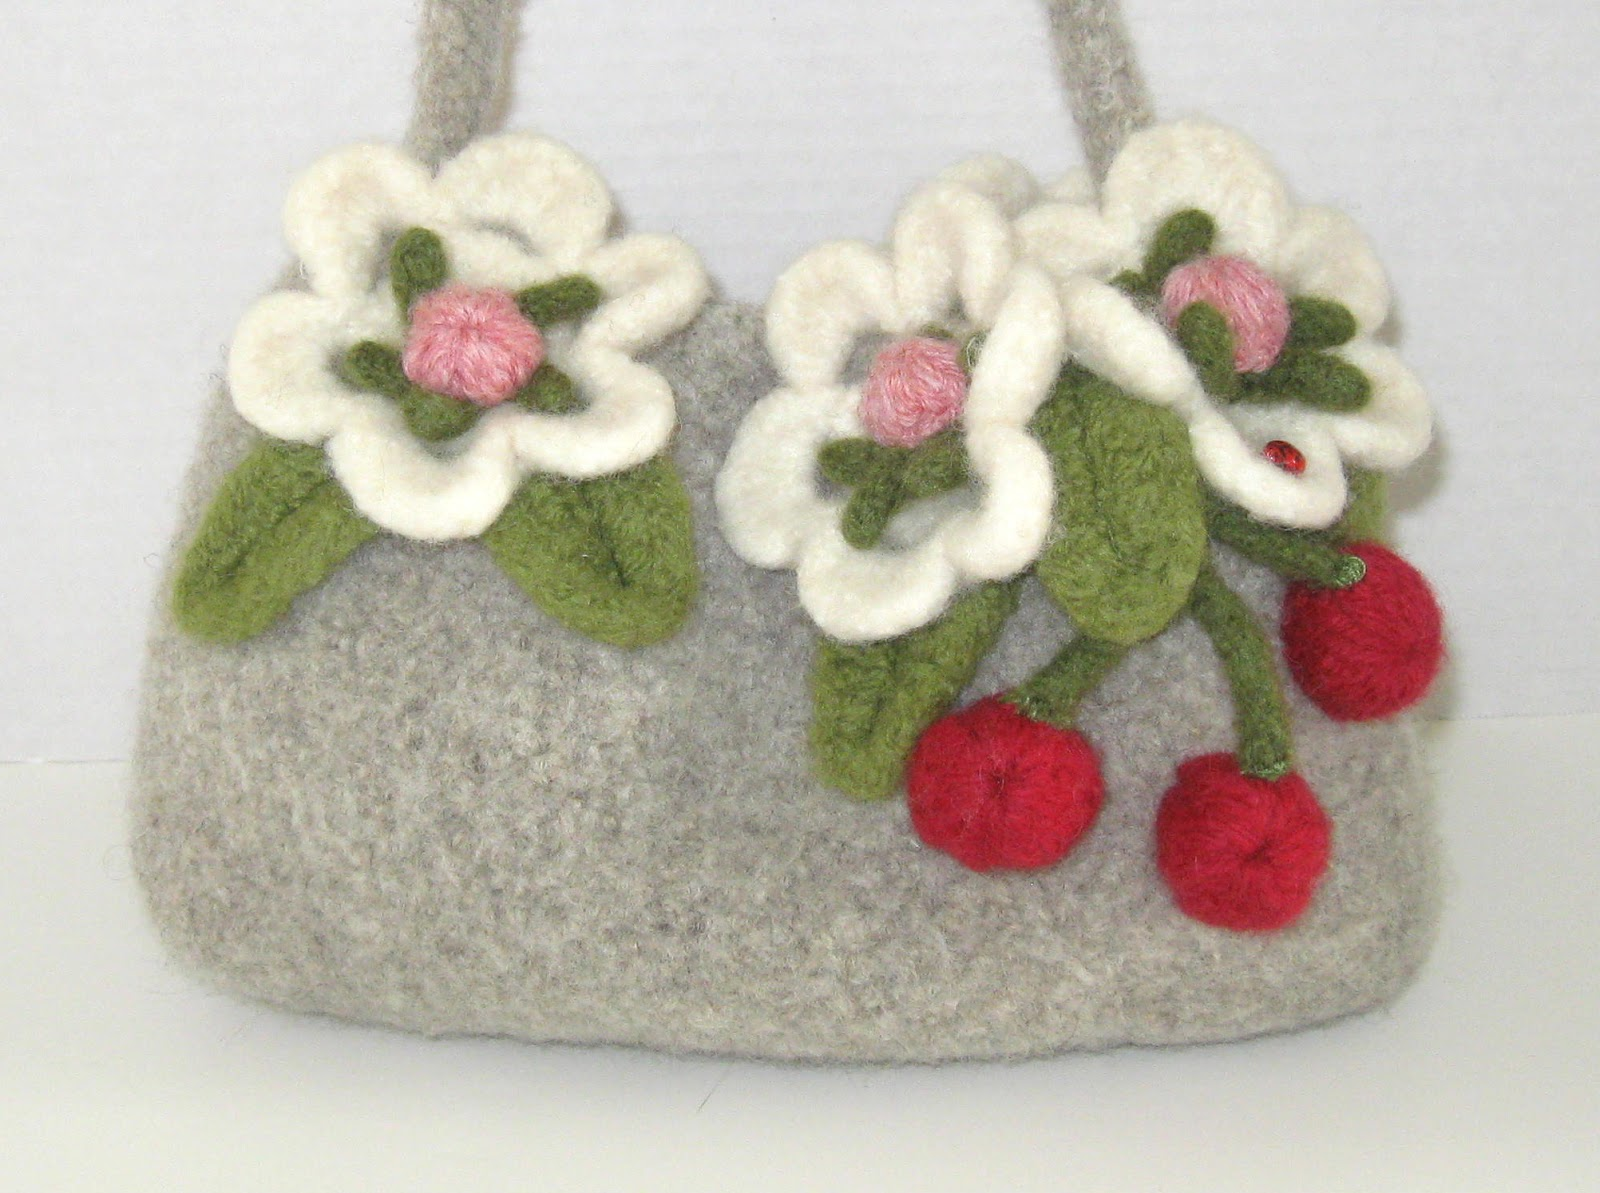 Felted wool crocheted purses Yen4Yarn